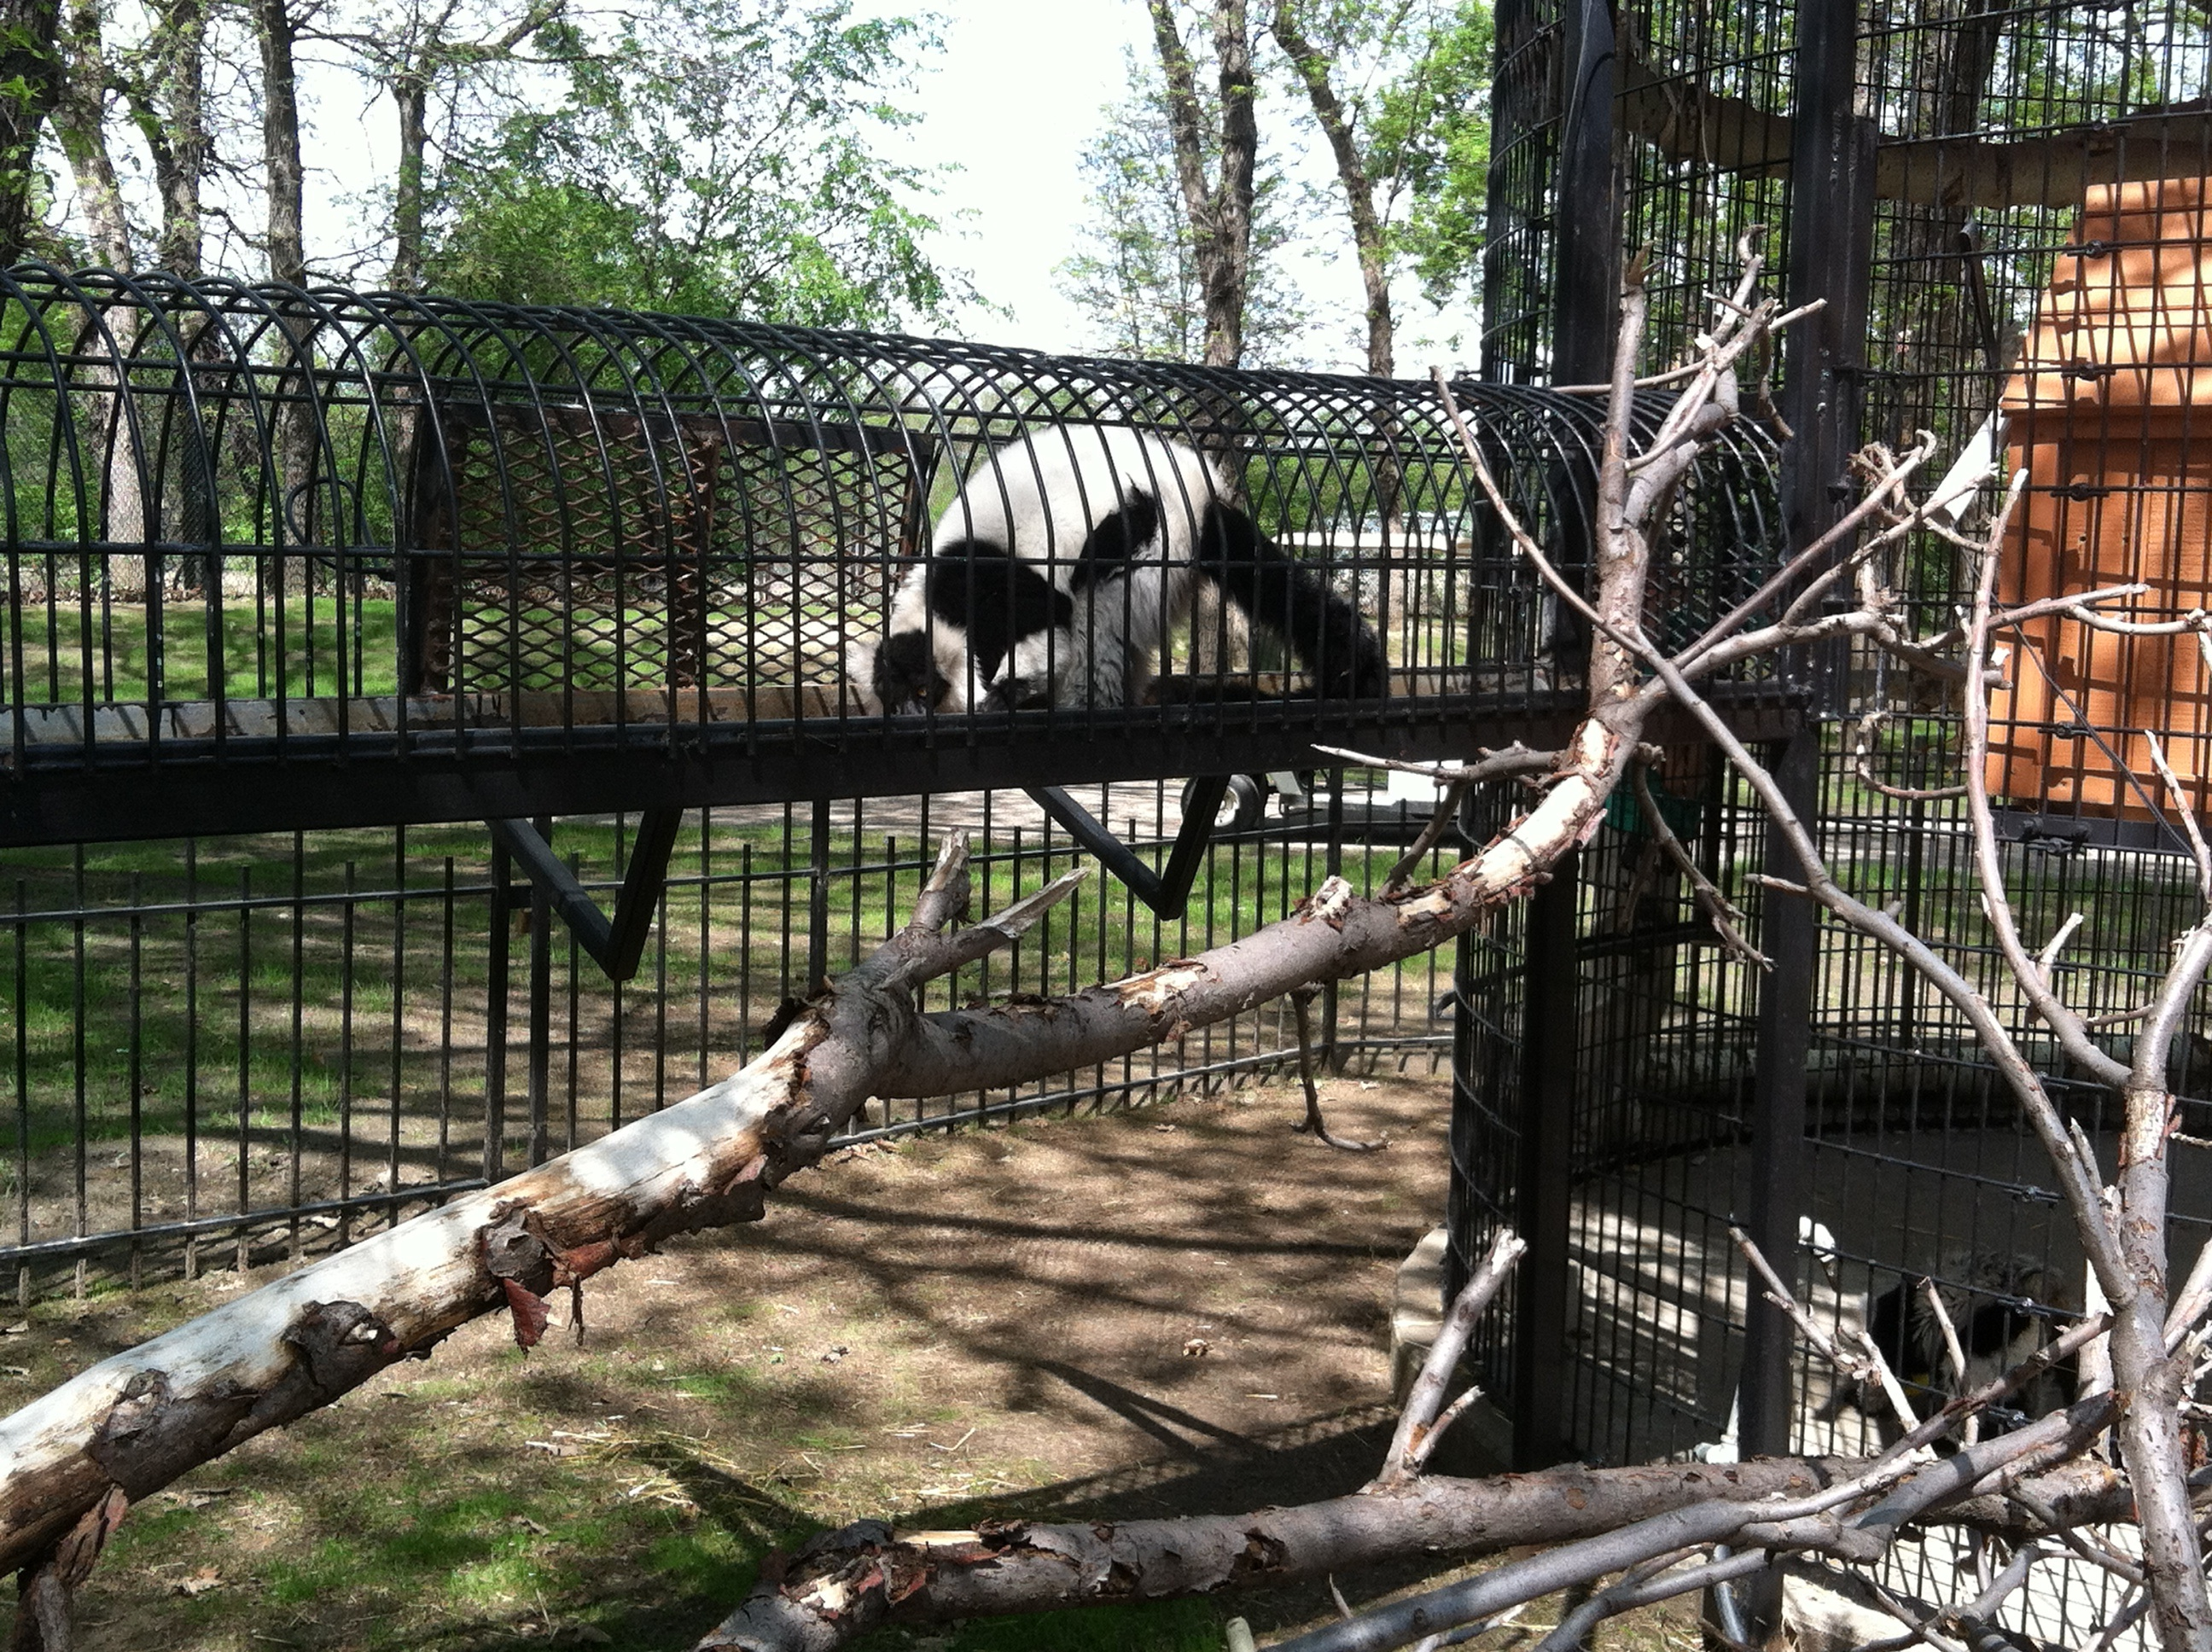 Ruffed lemur. The lemur cage is kinda neat- it has walkways so they can go to several different cages.